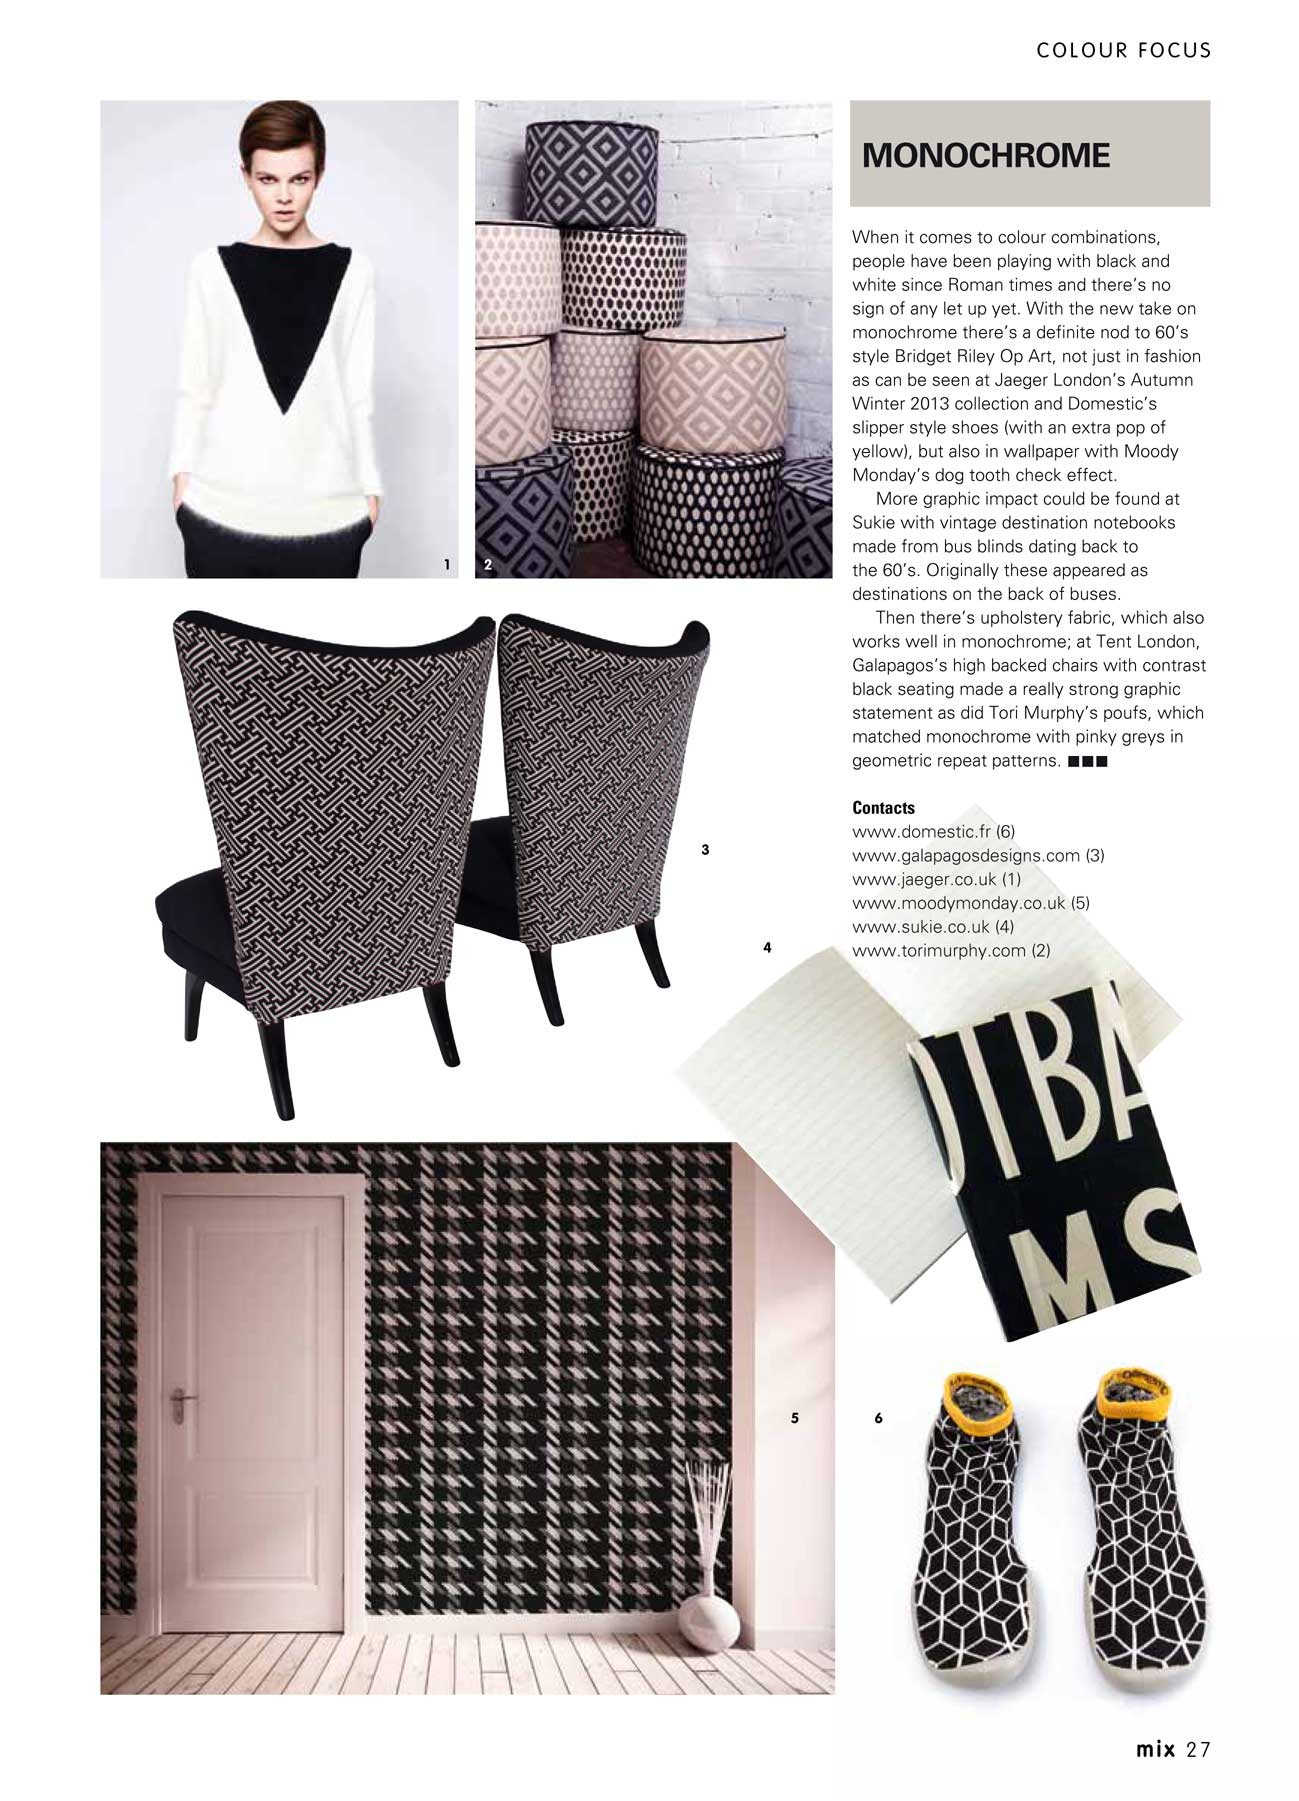 Mix Magazine, p.27 - Issue 34, December 2013